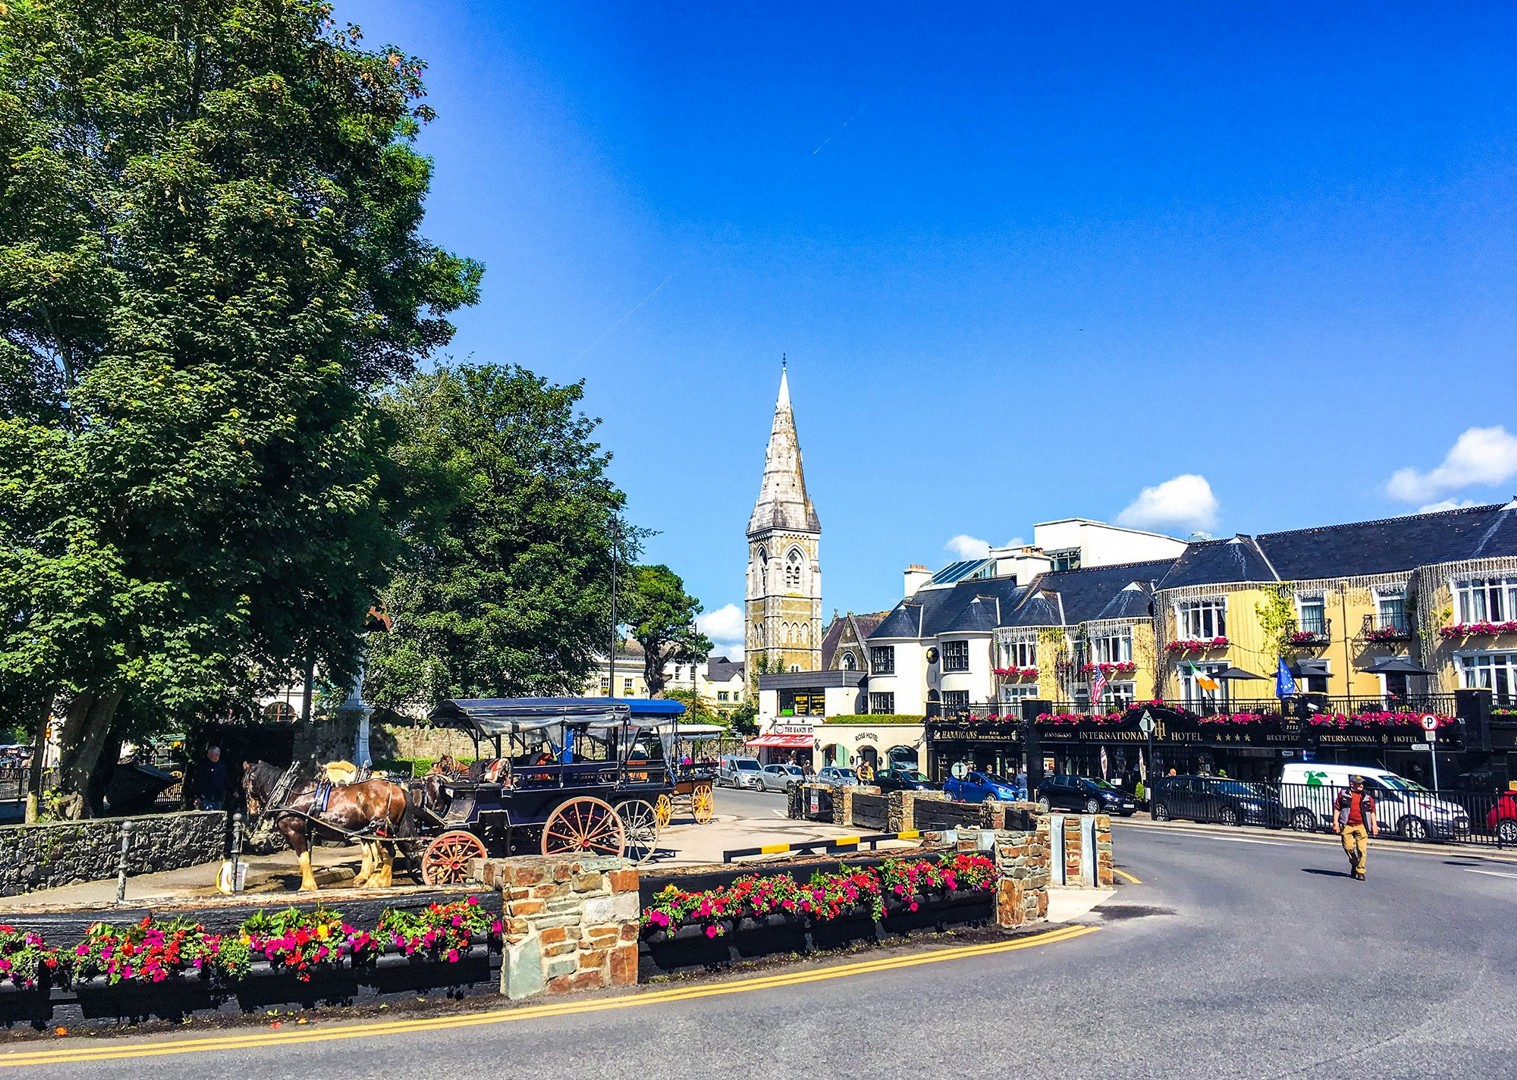 irish-town-highlights-of-kerry-holiday-self-guided-leisure-cycling.jpg - Ireland - Highlights of Kerry - Self-Guided Leisure Cycling Holiday - Leisure Cycling